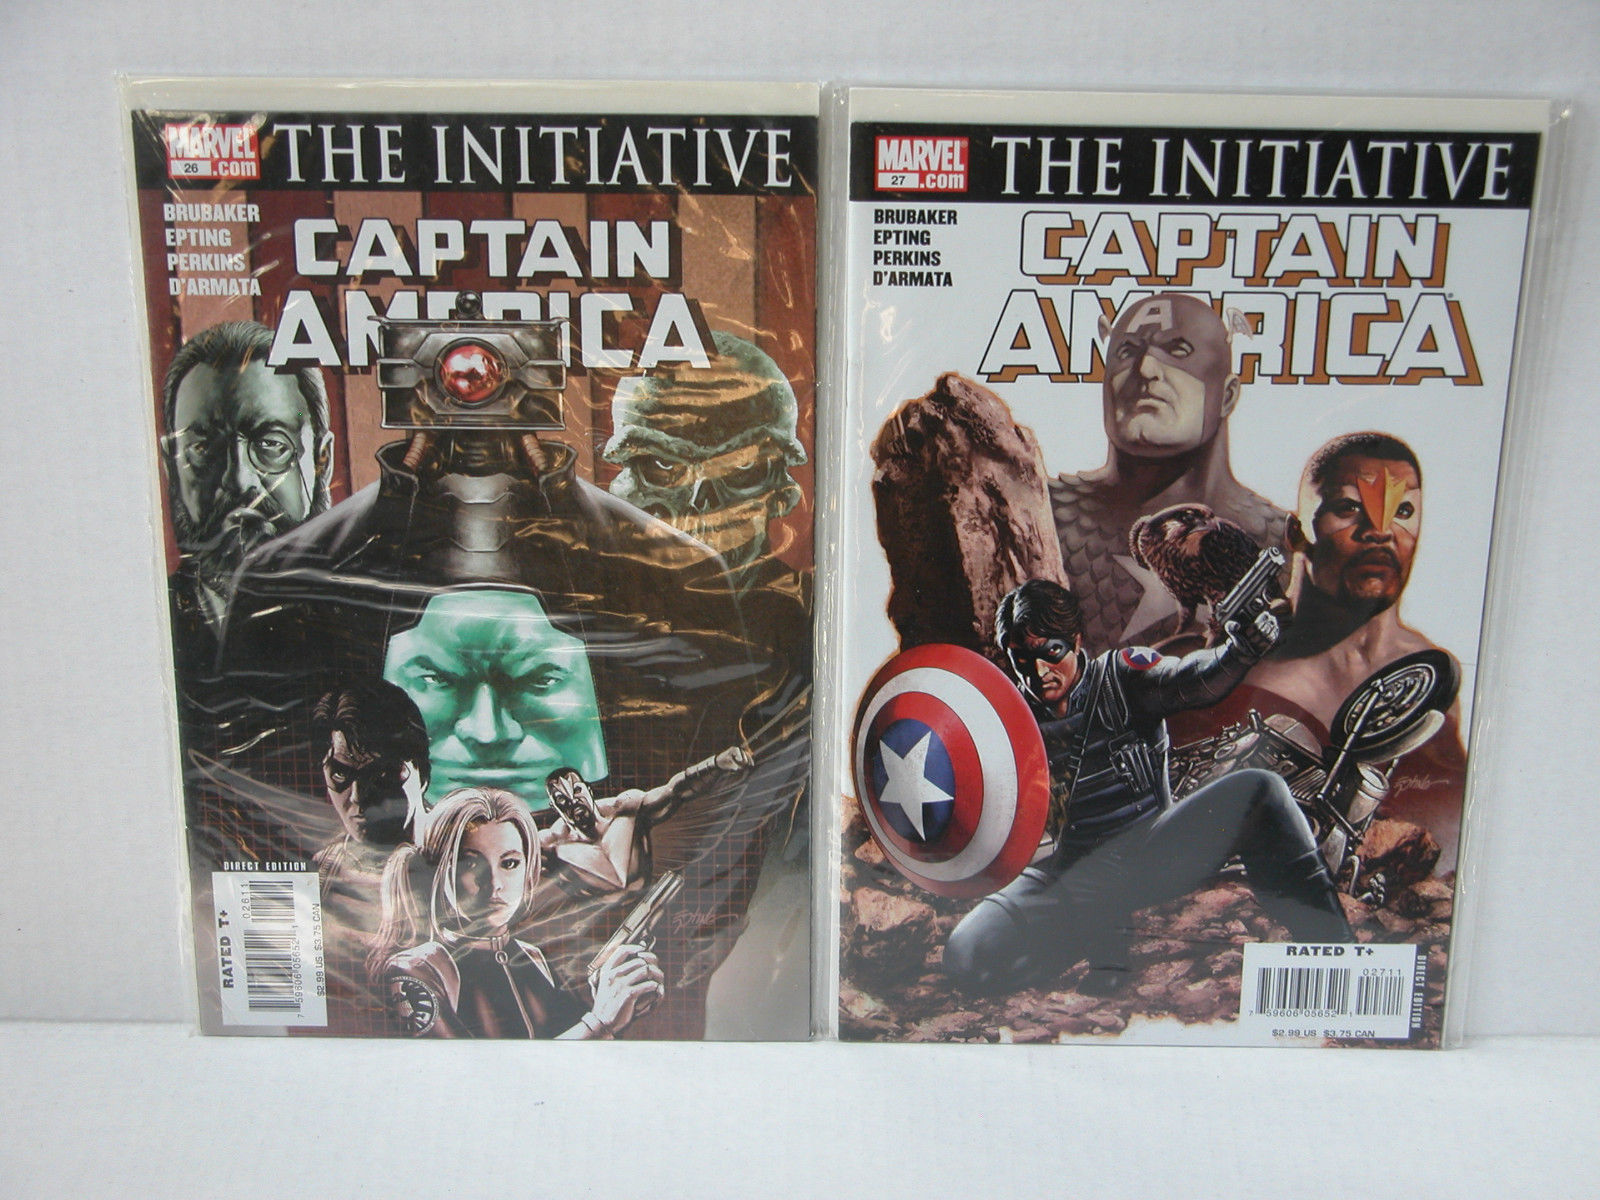 CAPTAIN AMERICA - #25 - DEATH OF...+  #22,23,24,26,27  - FREE SHIPPING!